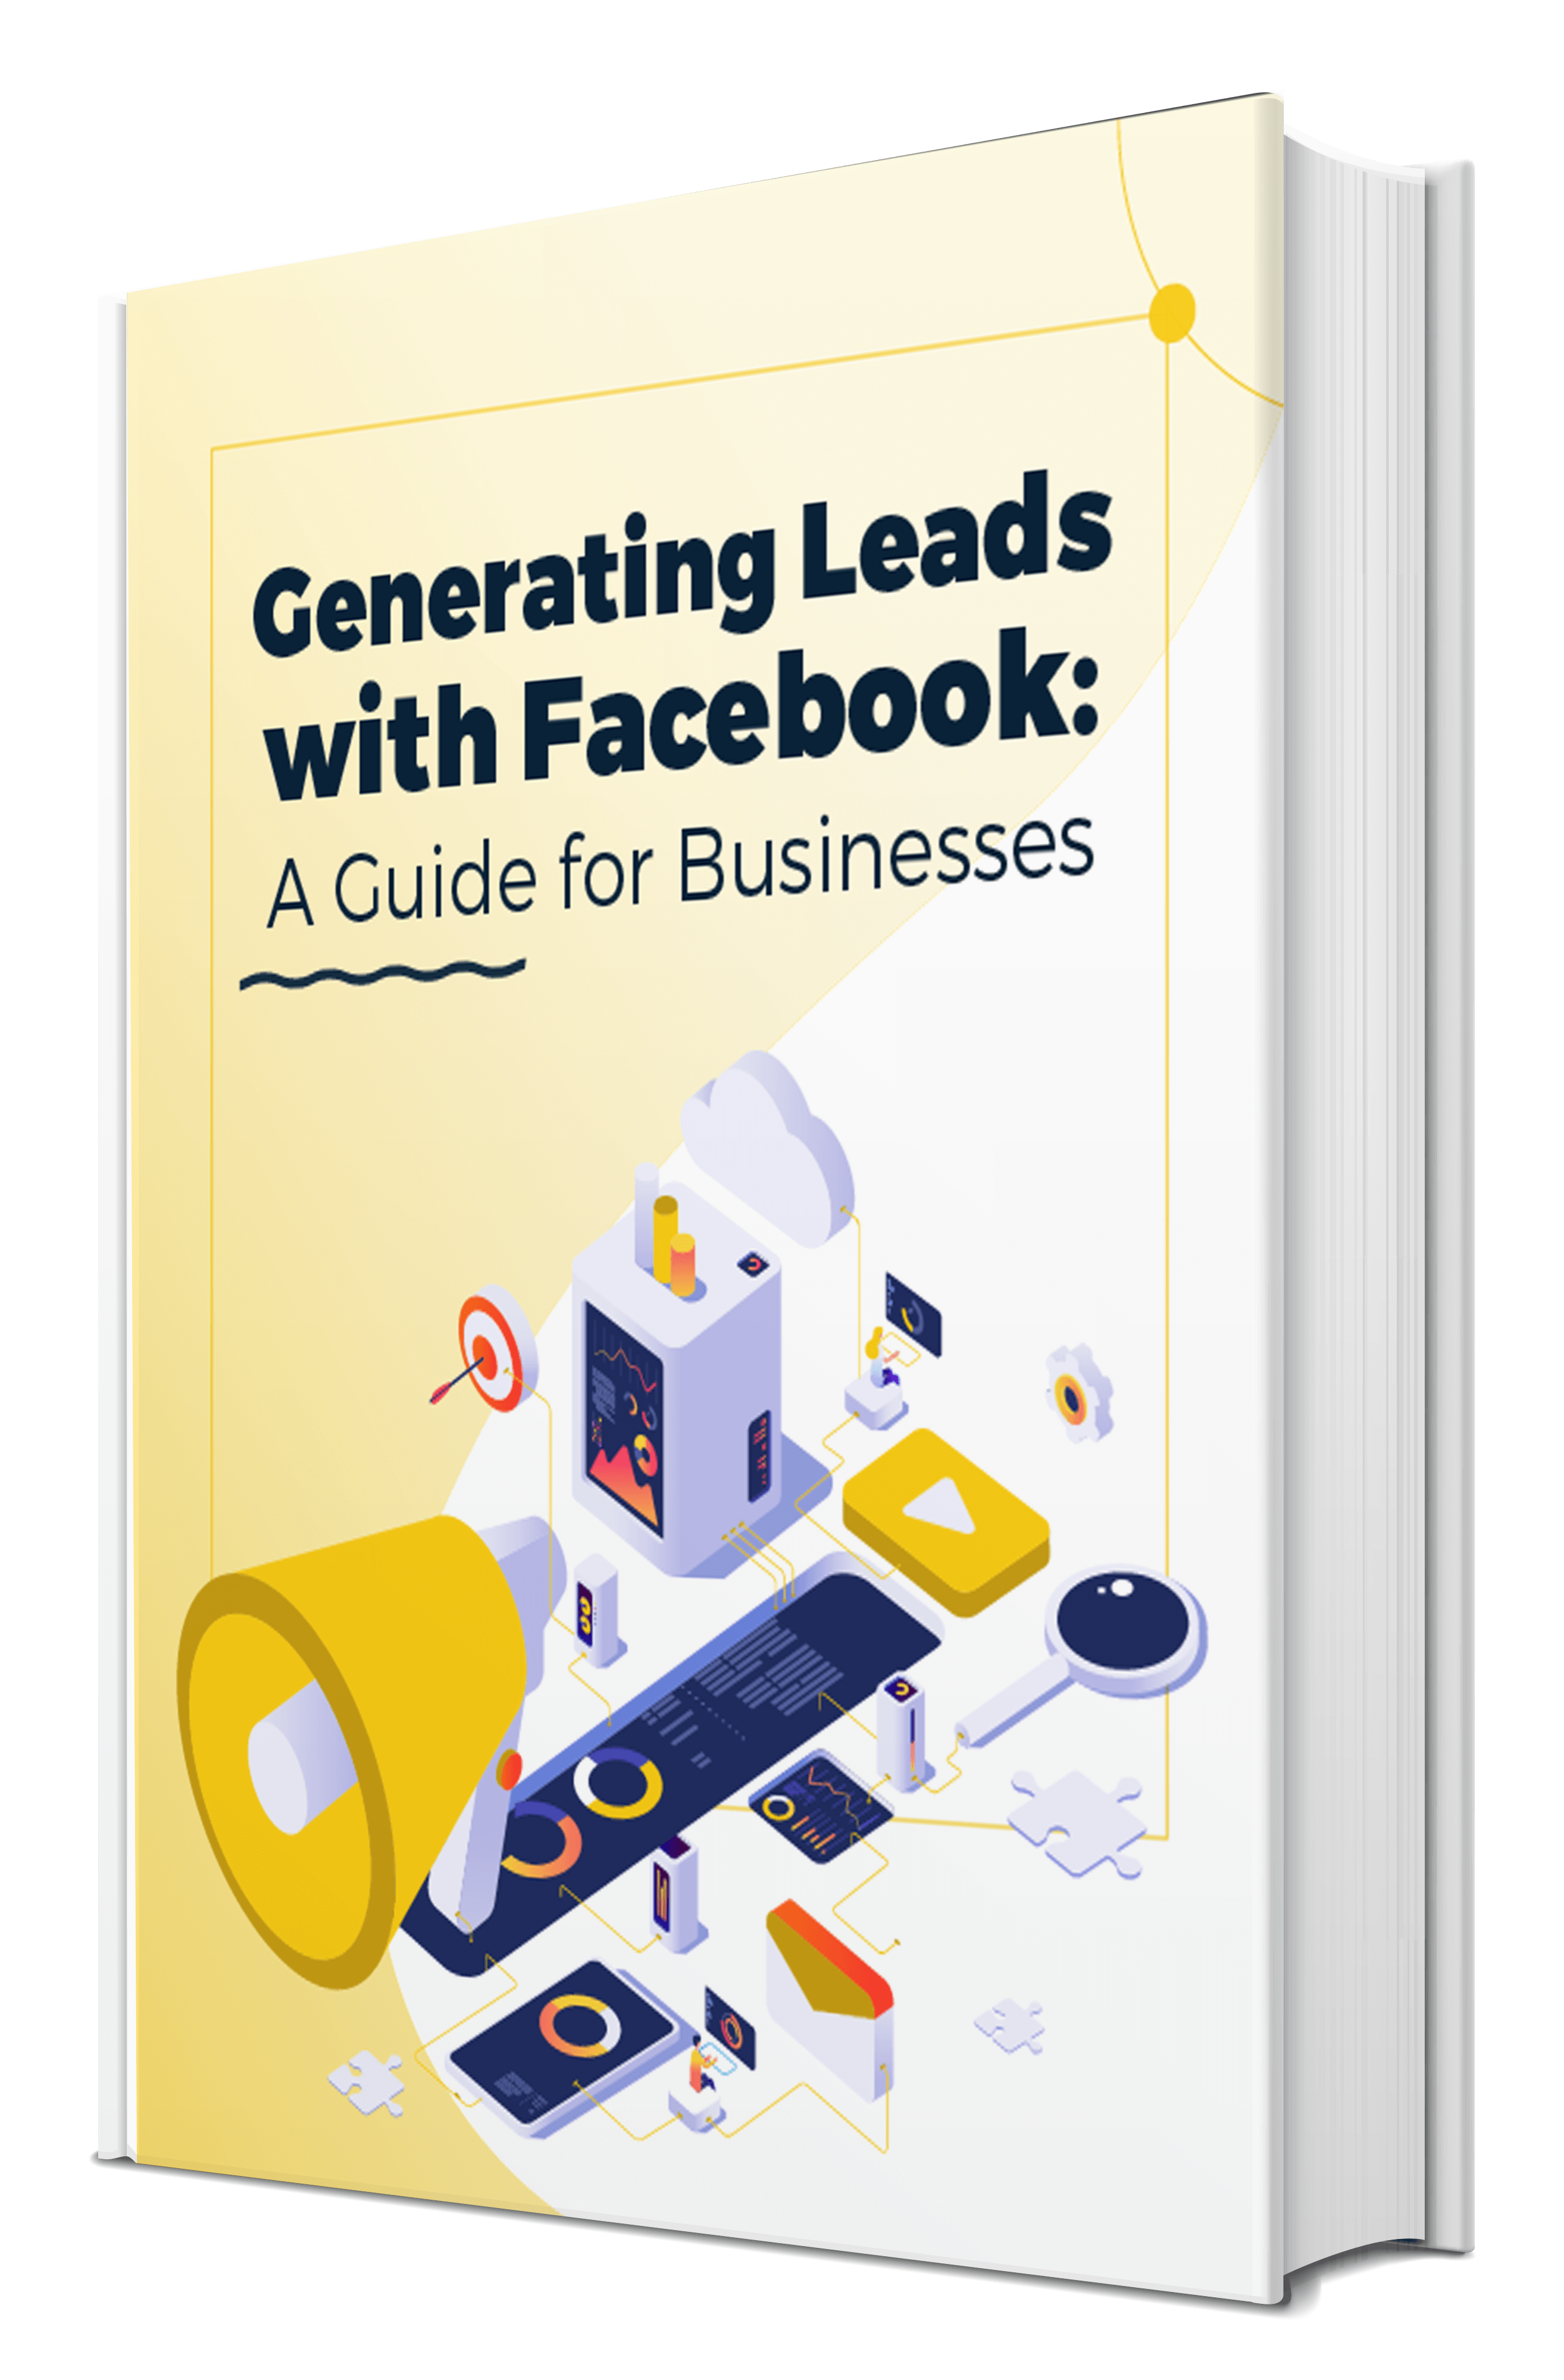 Generating Leads with Facebook: A Guide for Businesses